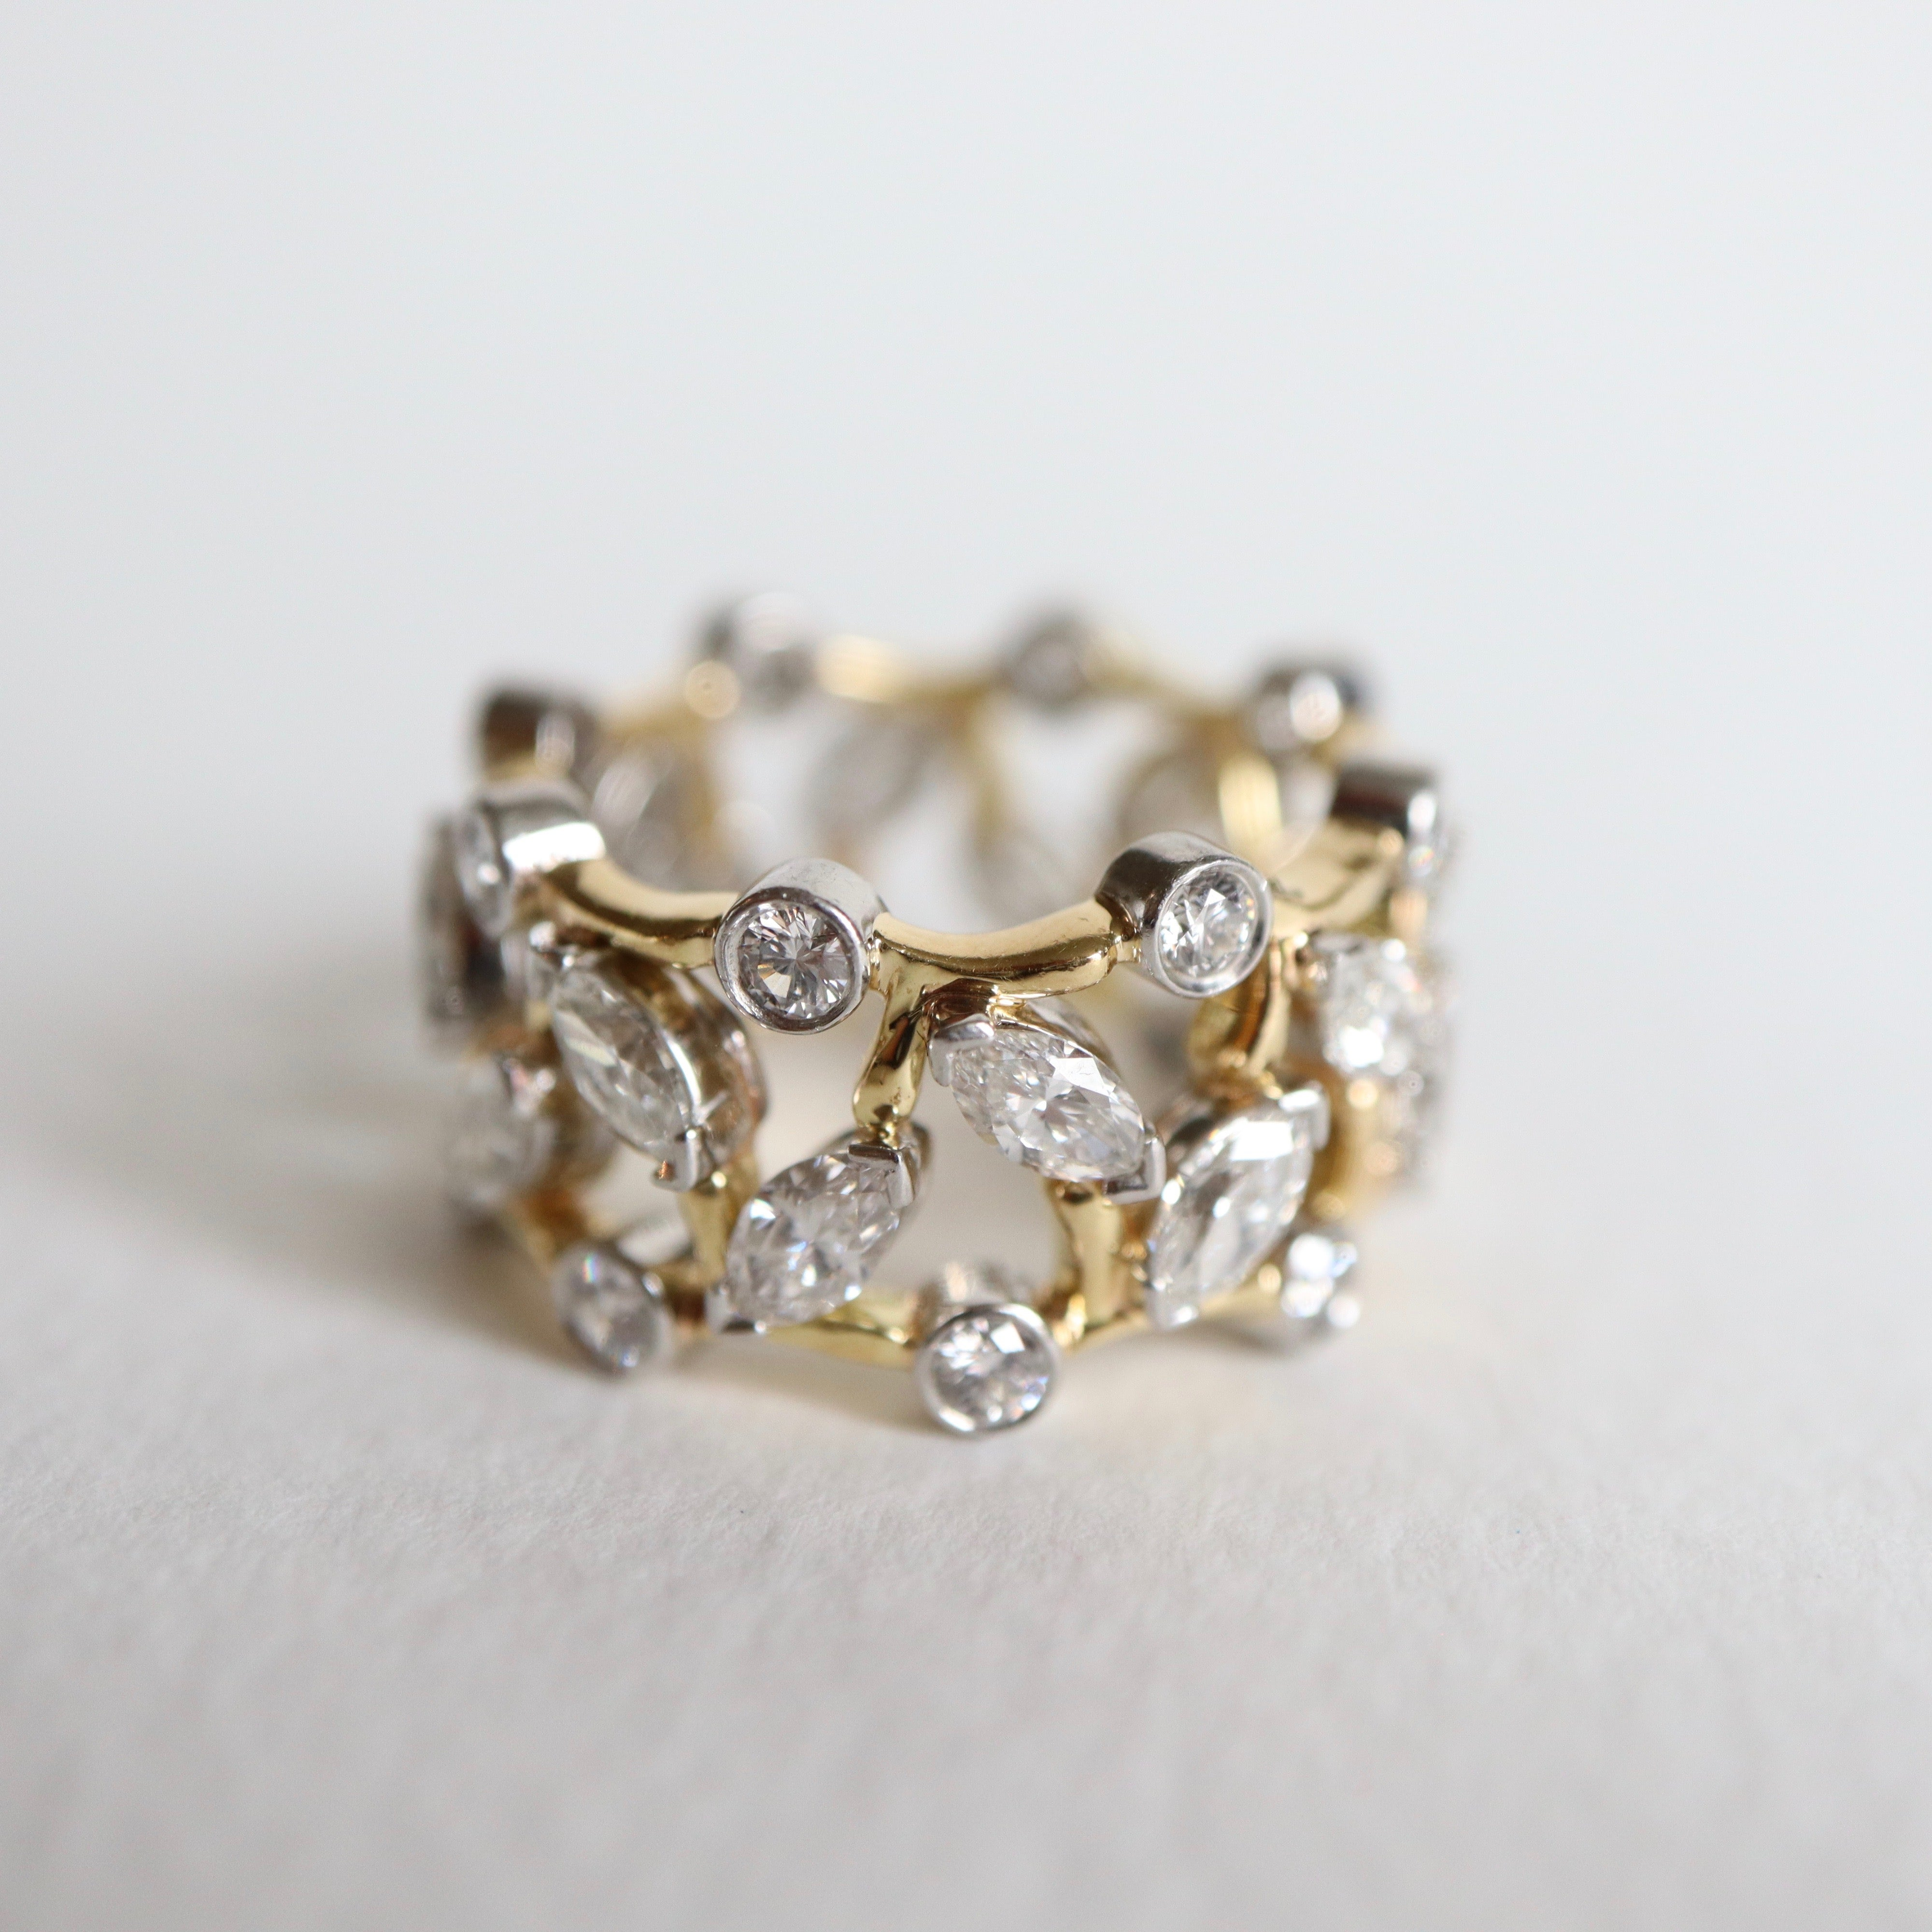 9367d56e688ae Tiffany's & Co. Gold and Platinum Ring Set with 16 Shuttle Diamonds 0.8  Carat